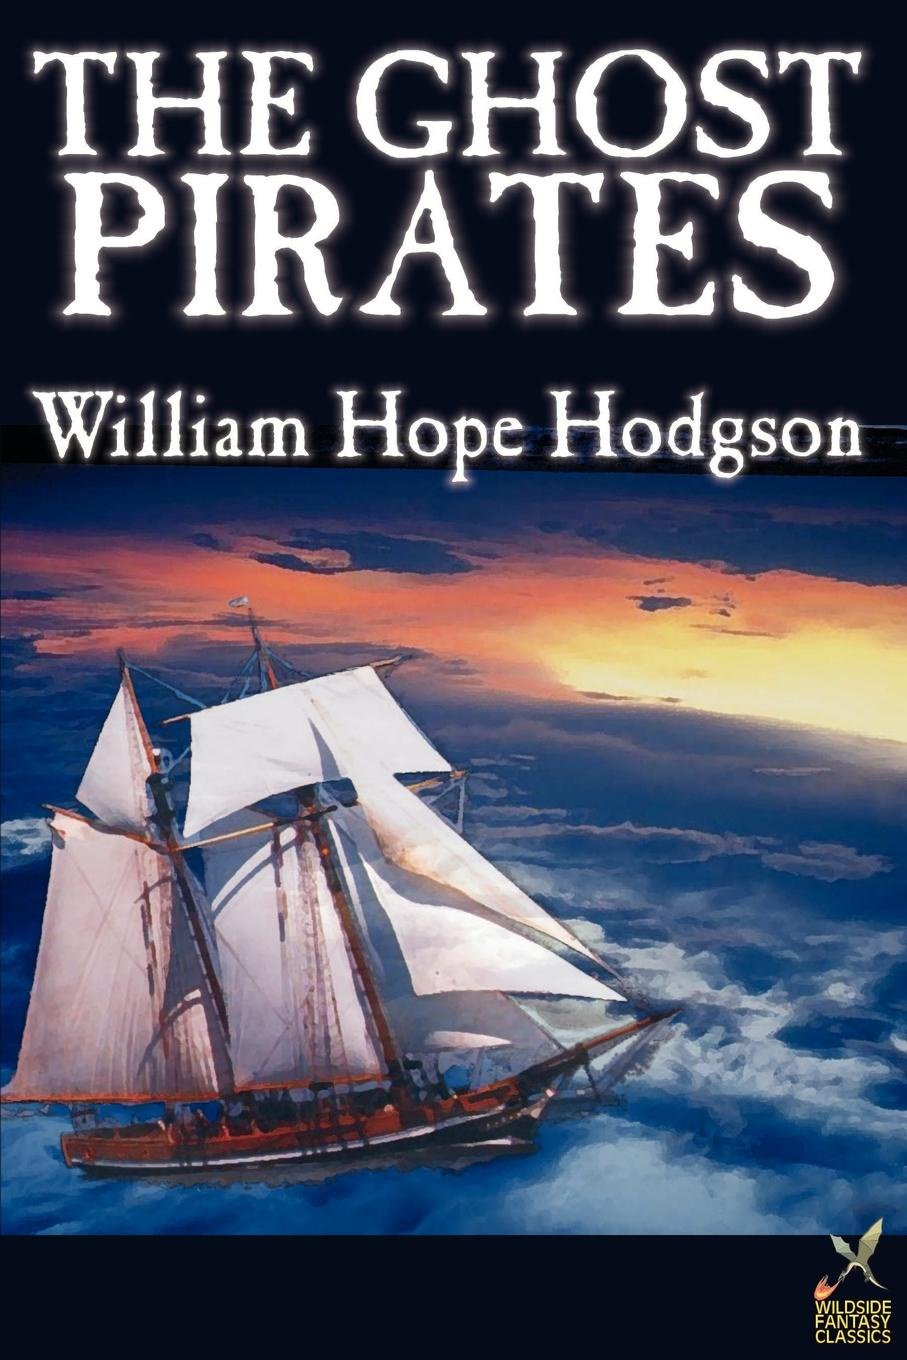 William Hope Hodgson The Ghost Pirates by William Hope Hodgson, Science Fiction william hope hodgson the boats of the glen carrig by william hope hodgson fiction action